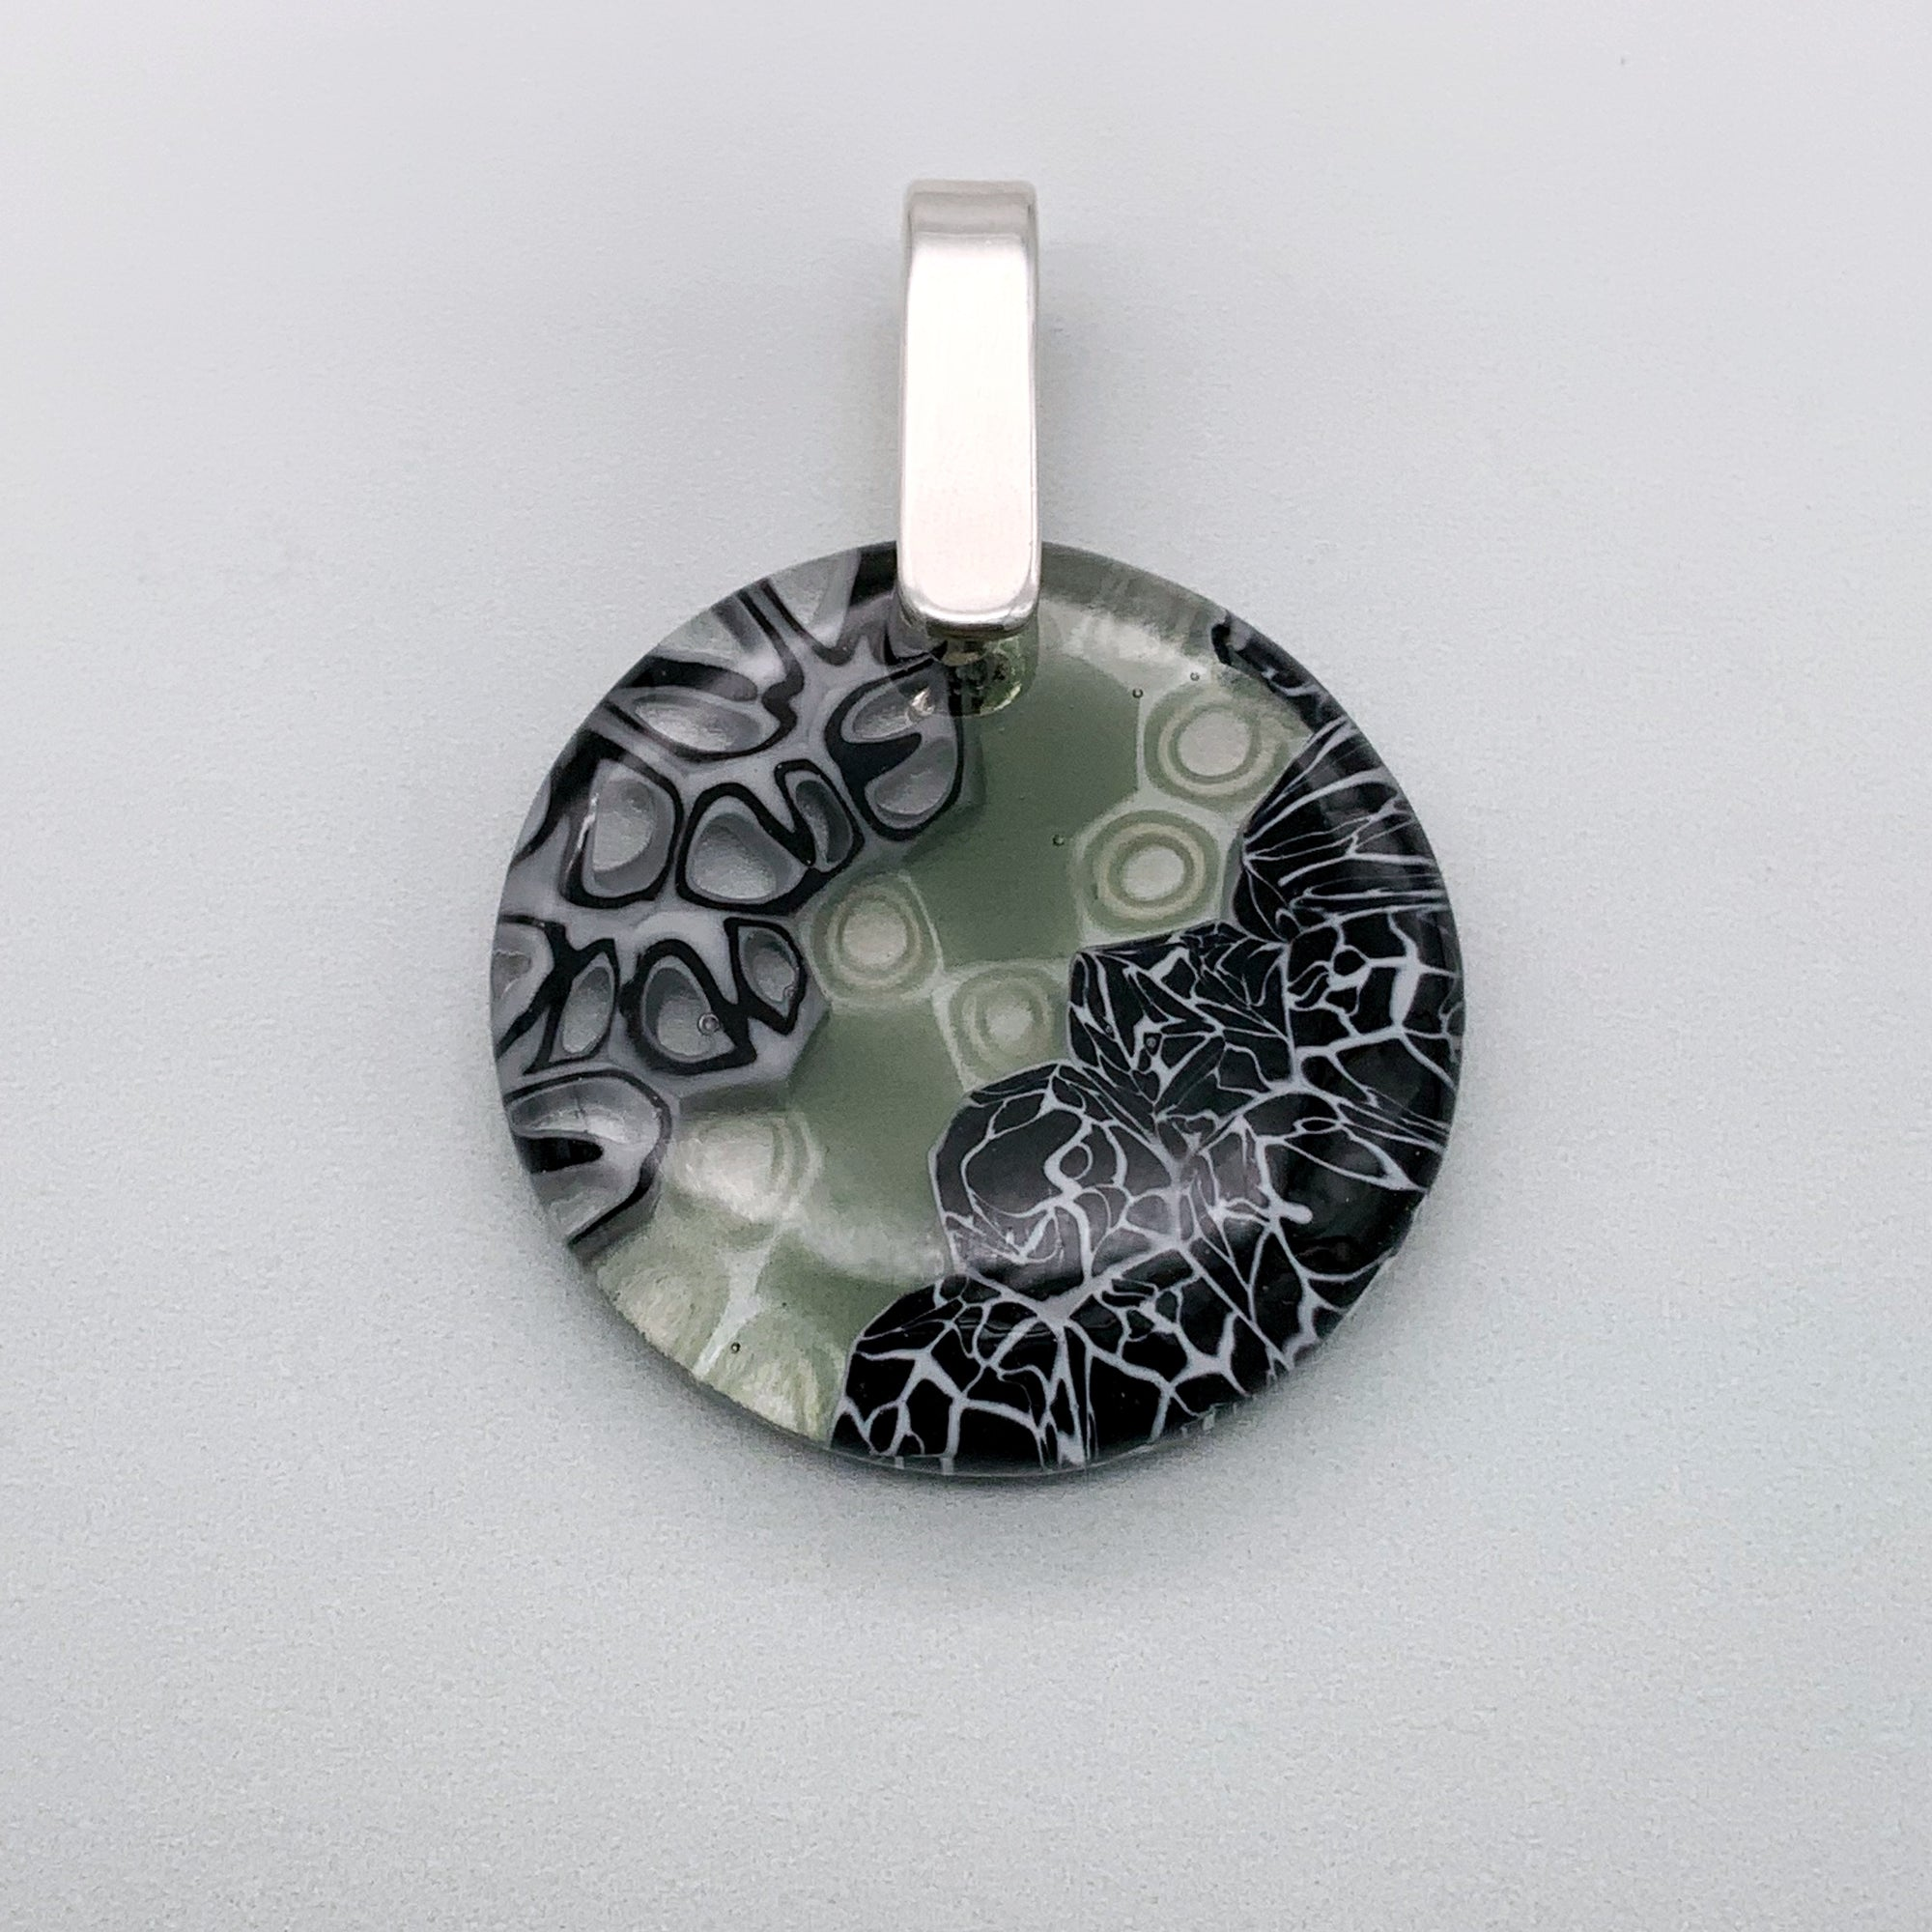 Designer Murrini 35mm round glass pendant in black and grey